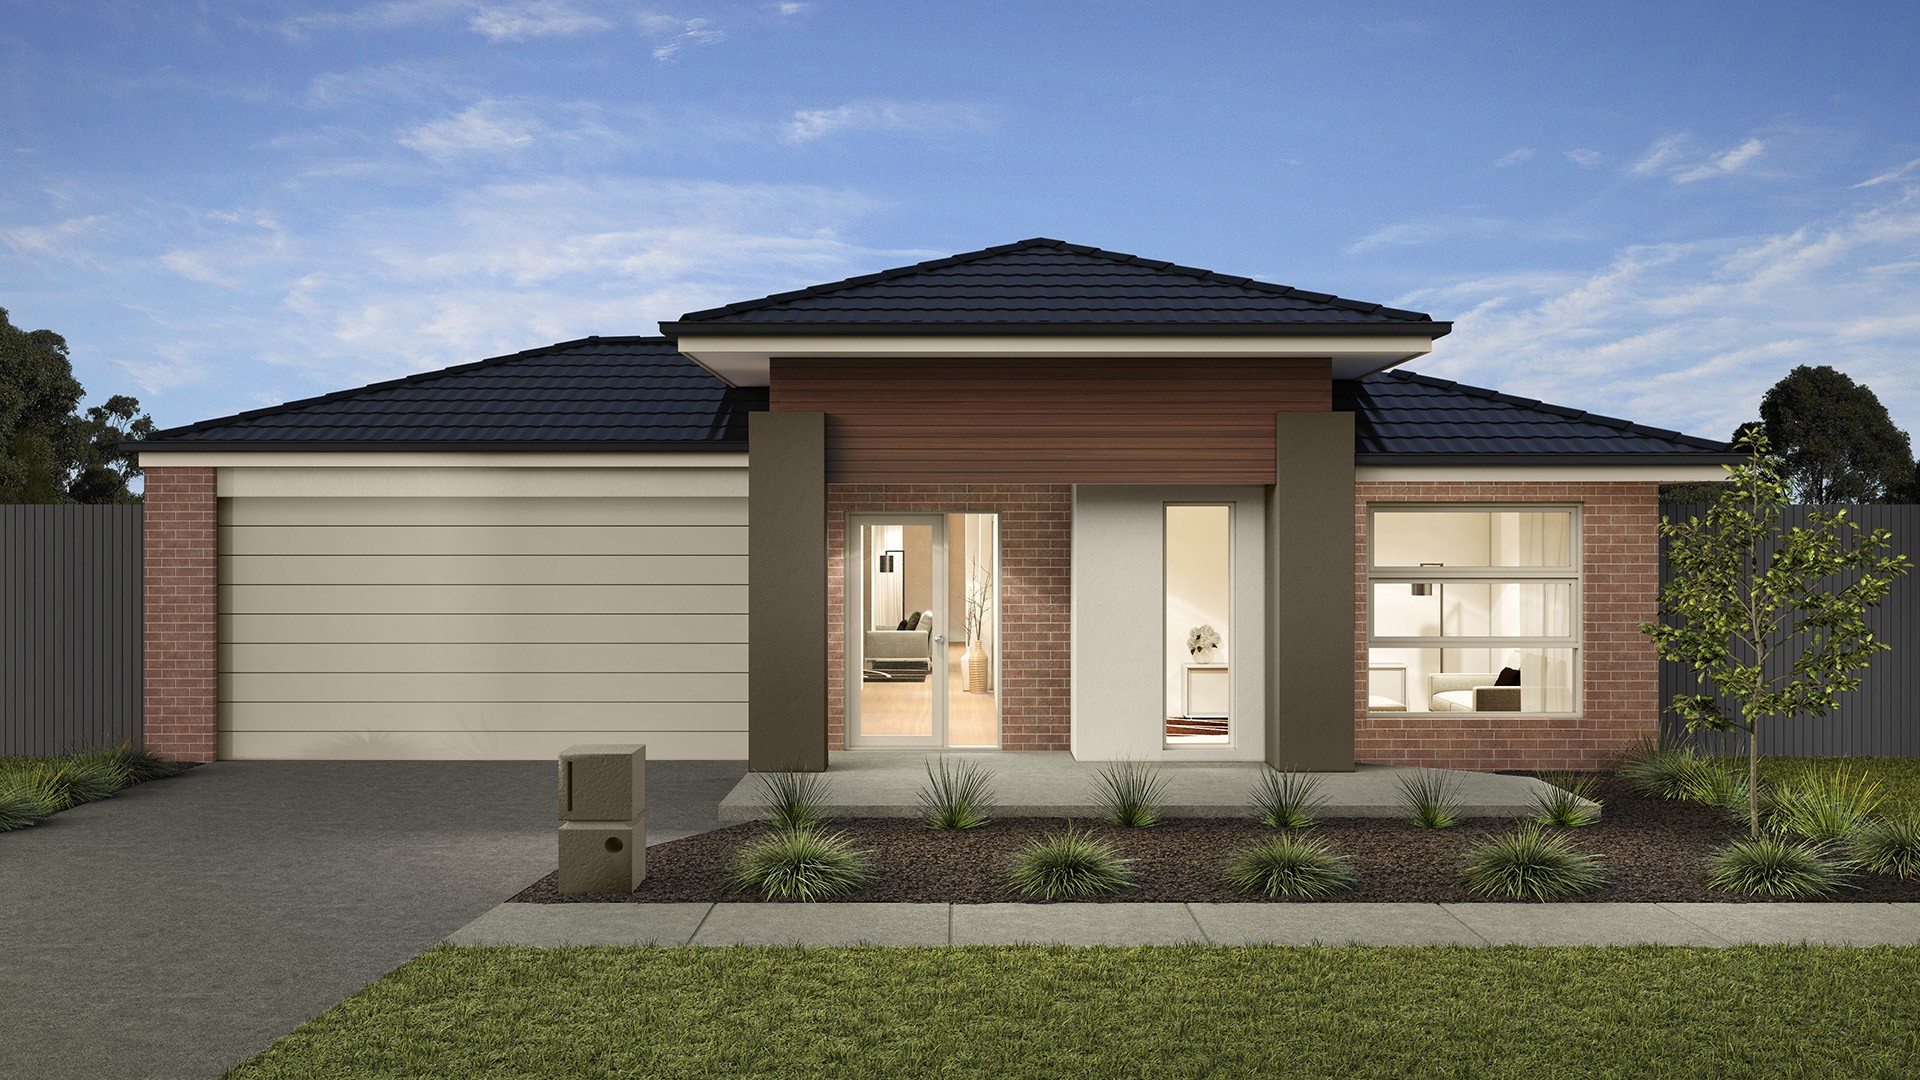 EASYLIVING RIVIERA MANCHESTER 14 Exterior Image 1